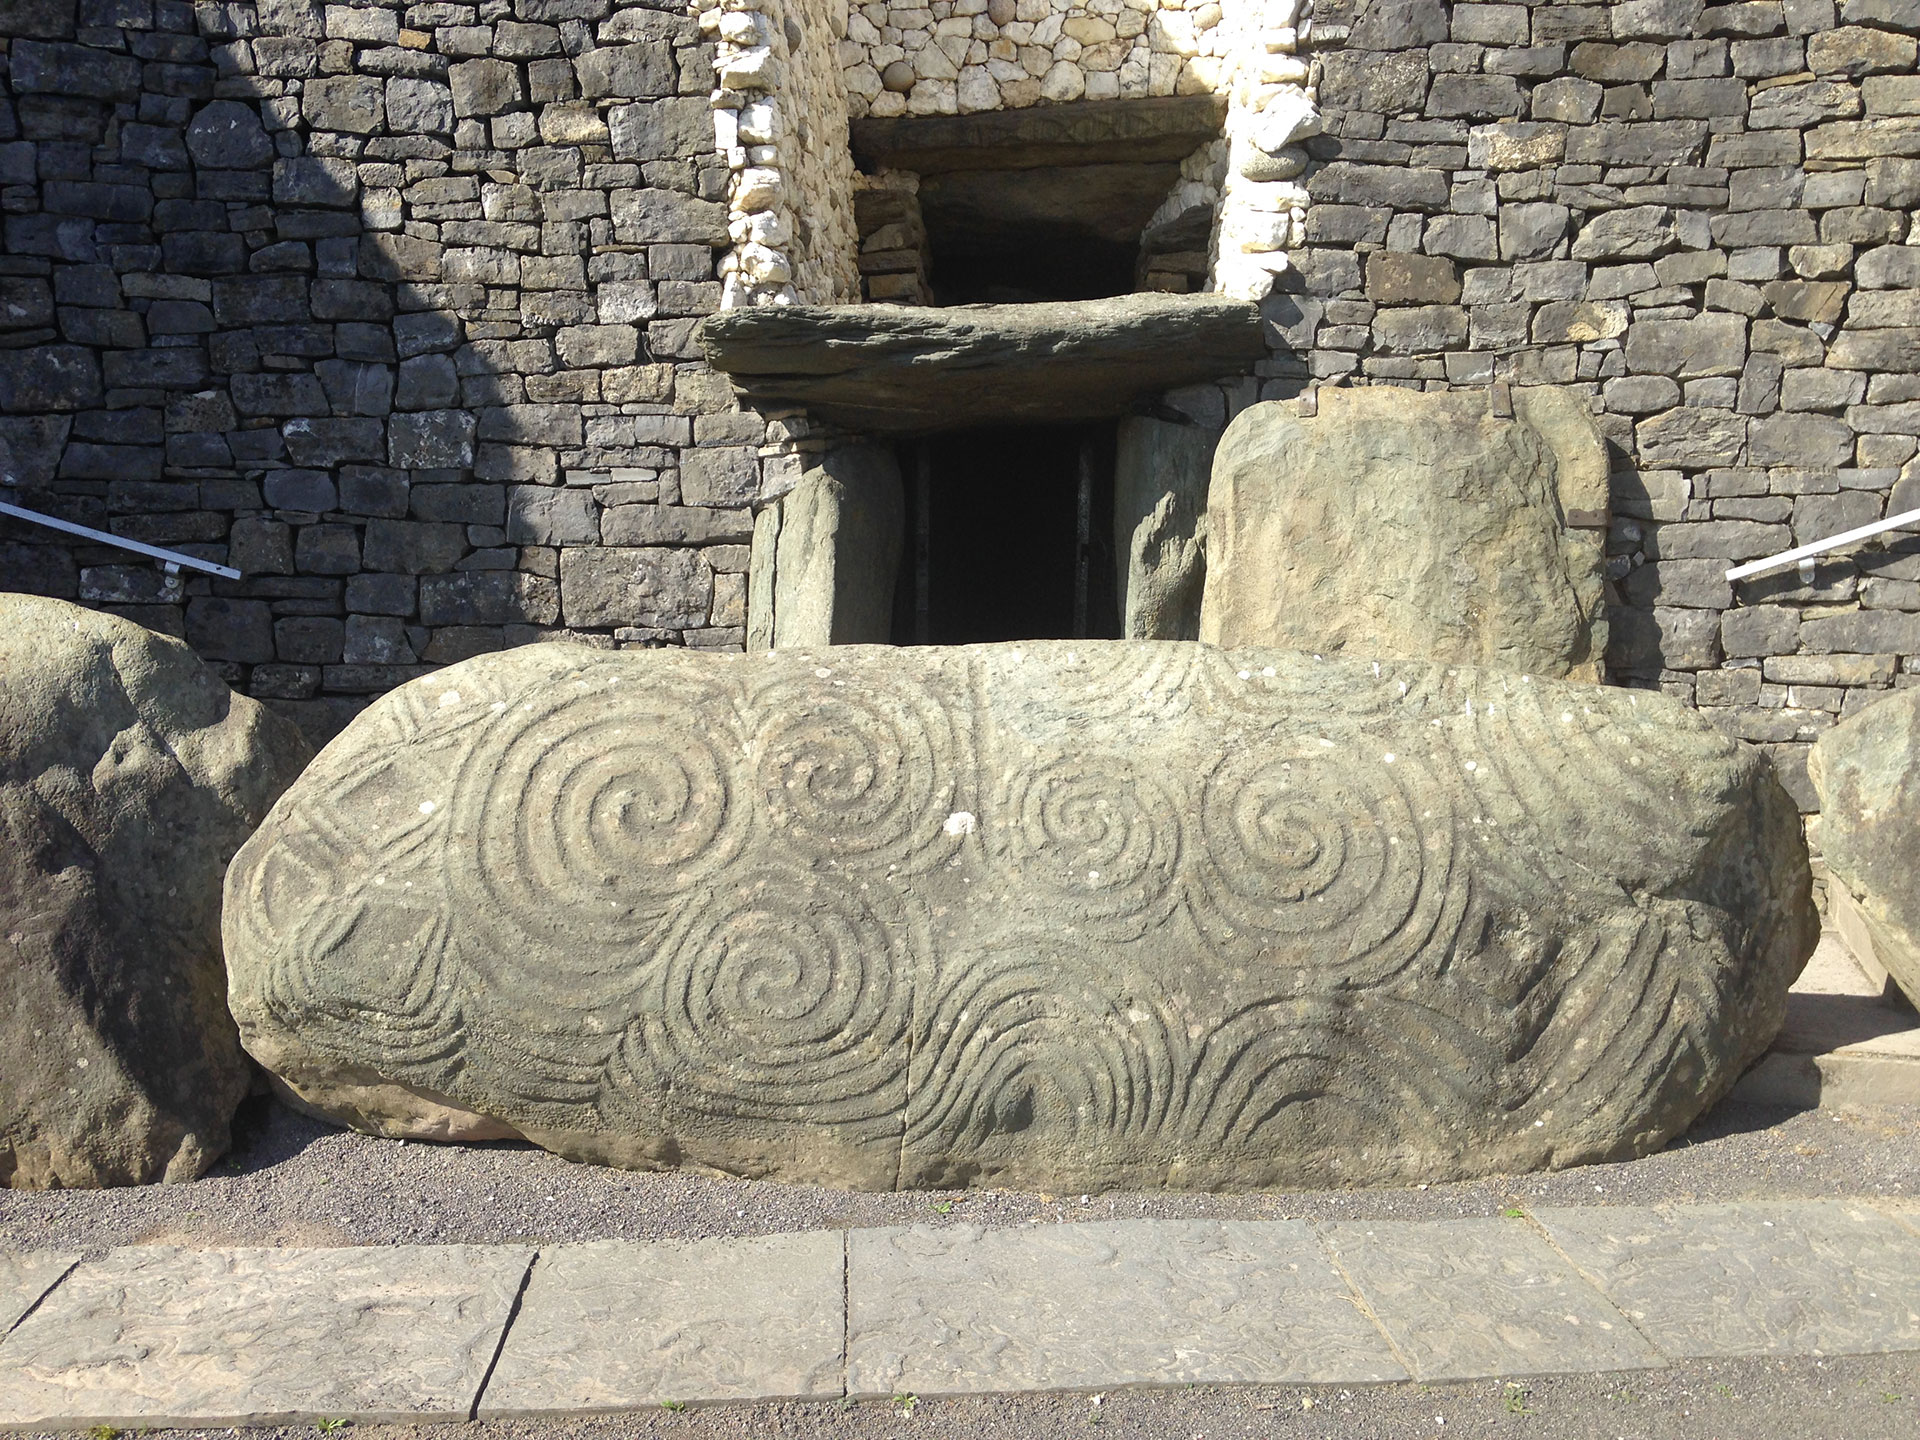 Picture of a boulder featuring spiral carvings and other geometric shapes at the Newgrange site, Brú na Bóinne complex, Ireland